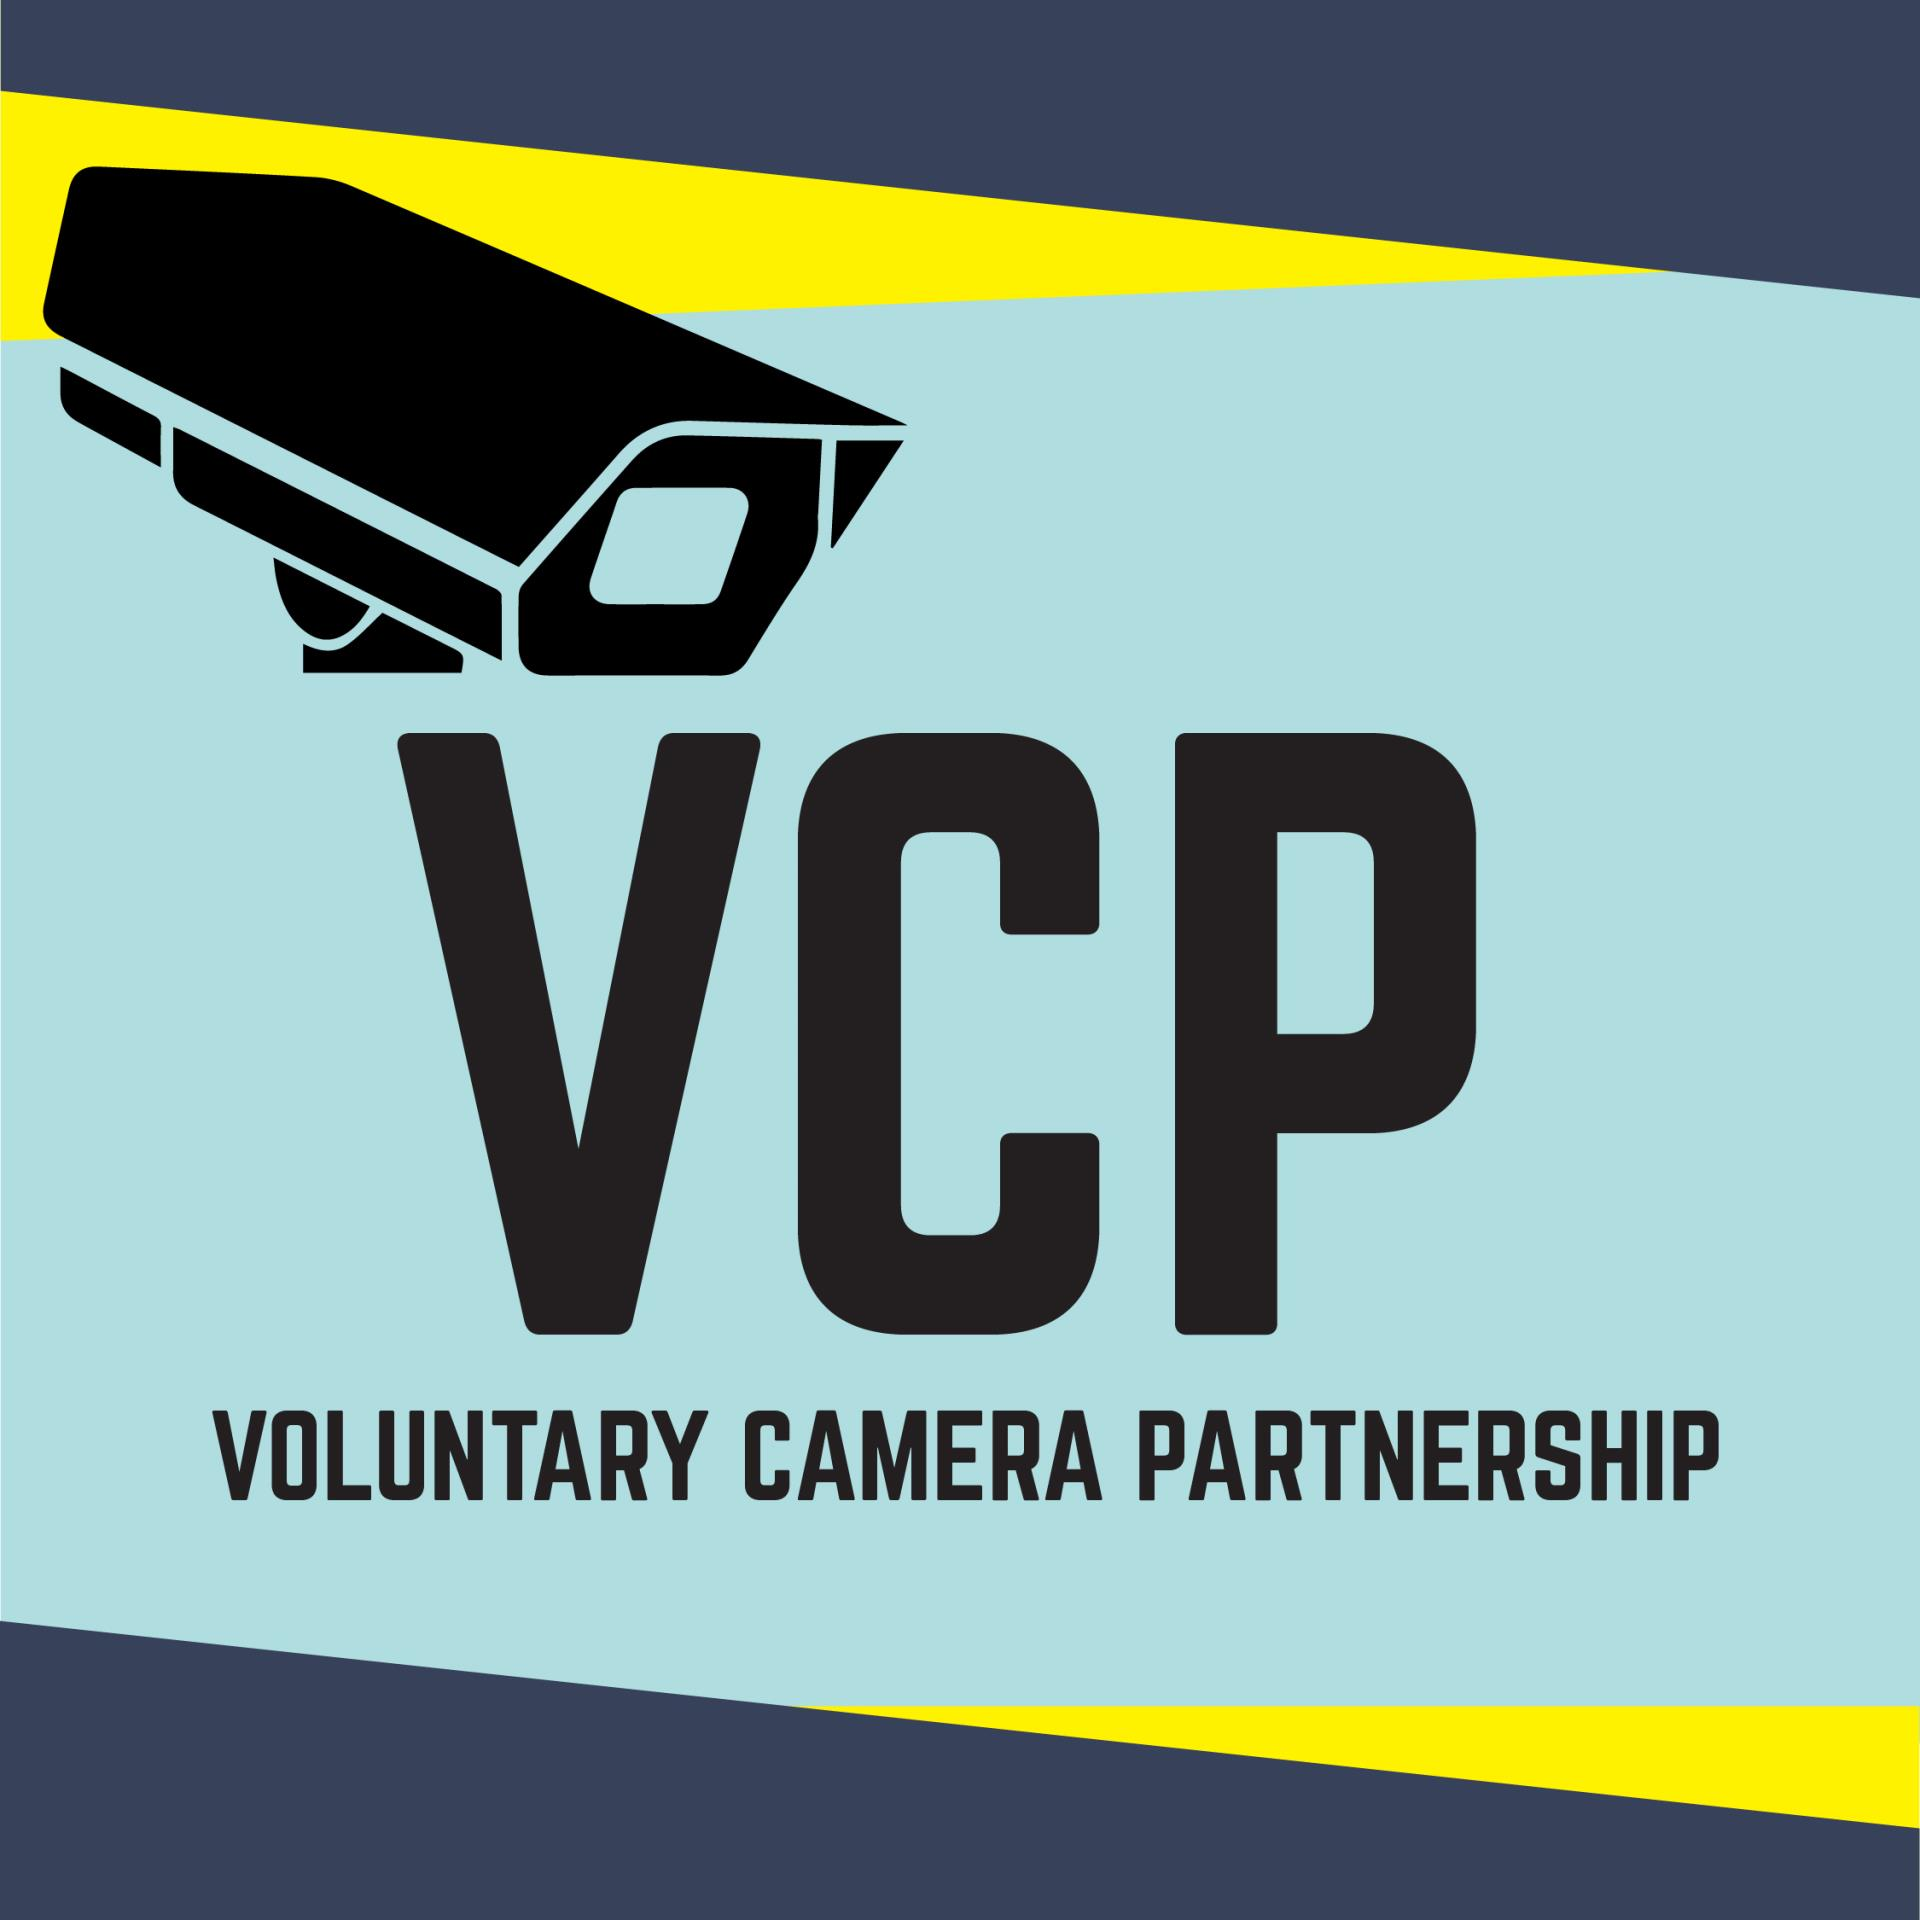 Voluntary Camera Partnership